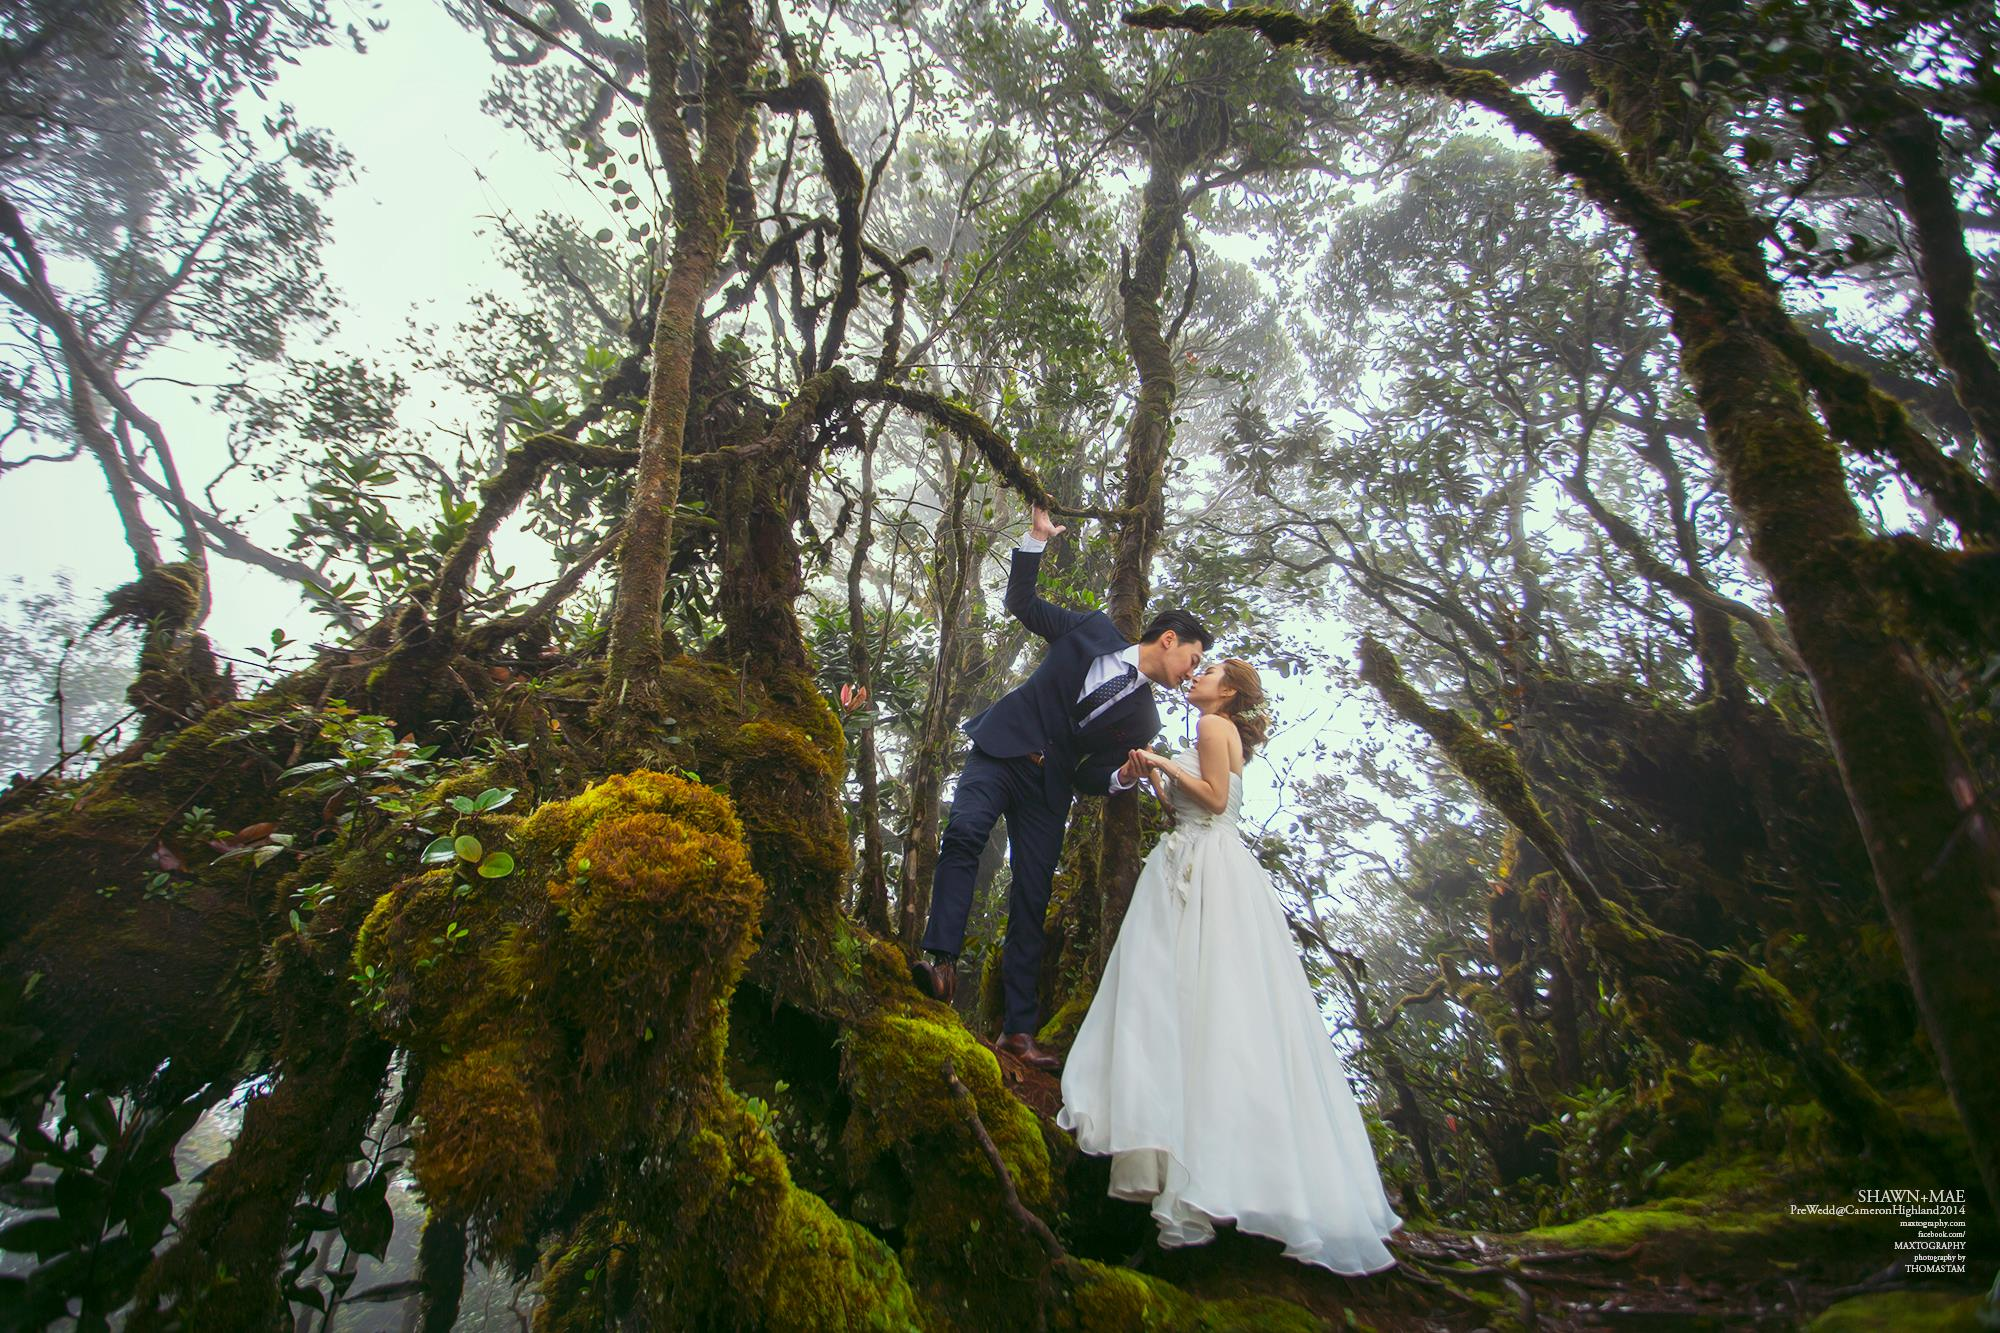 Couple pose at Mossy forest Cameron Highland